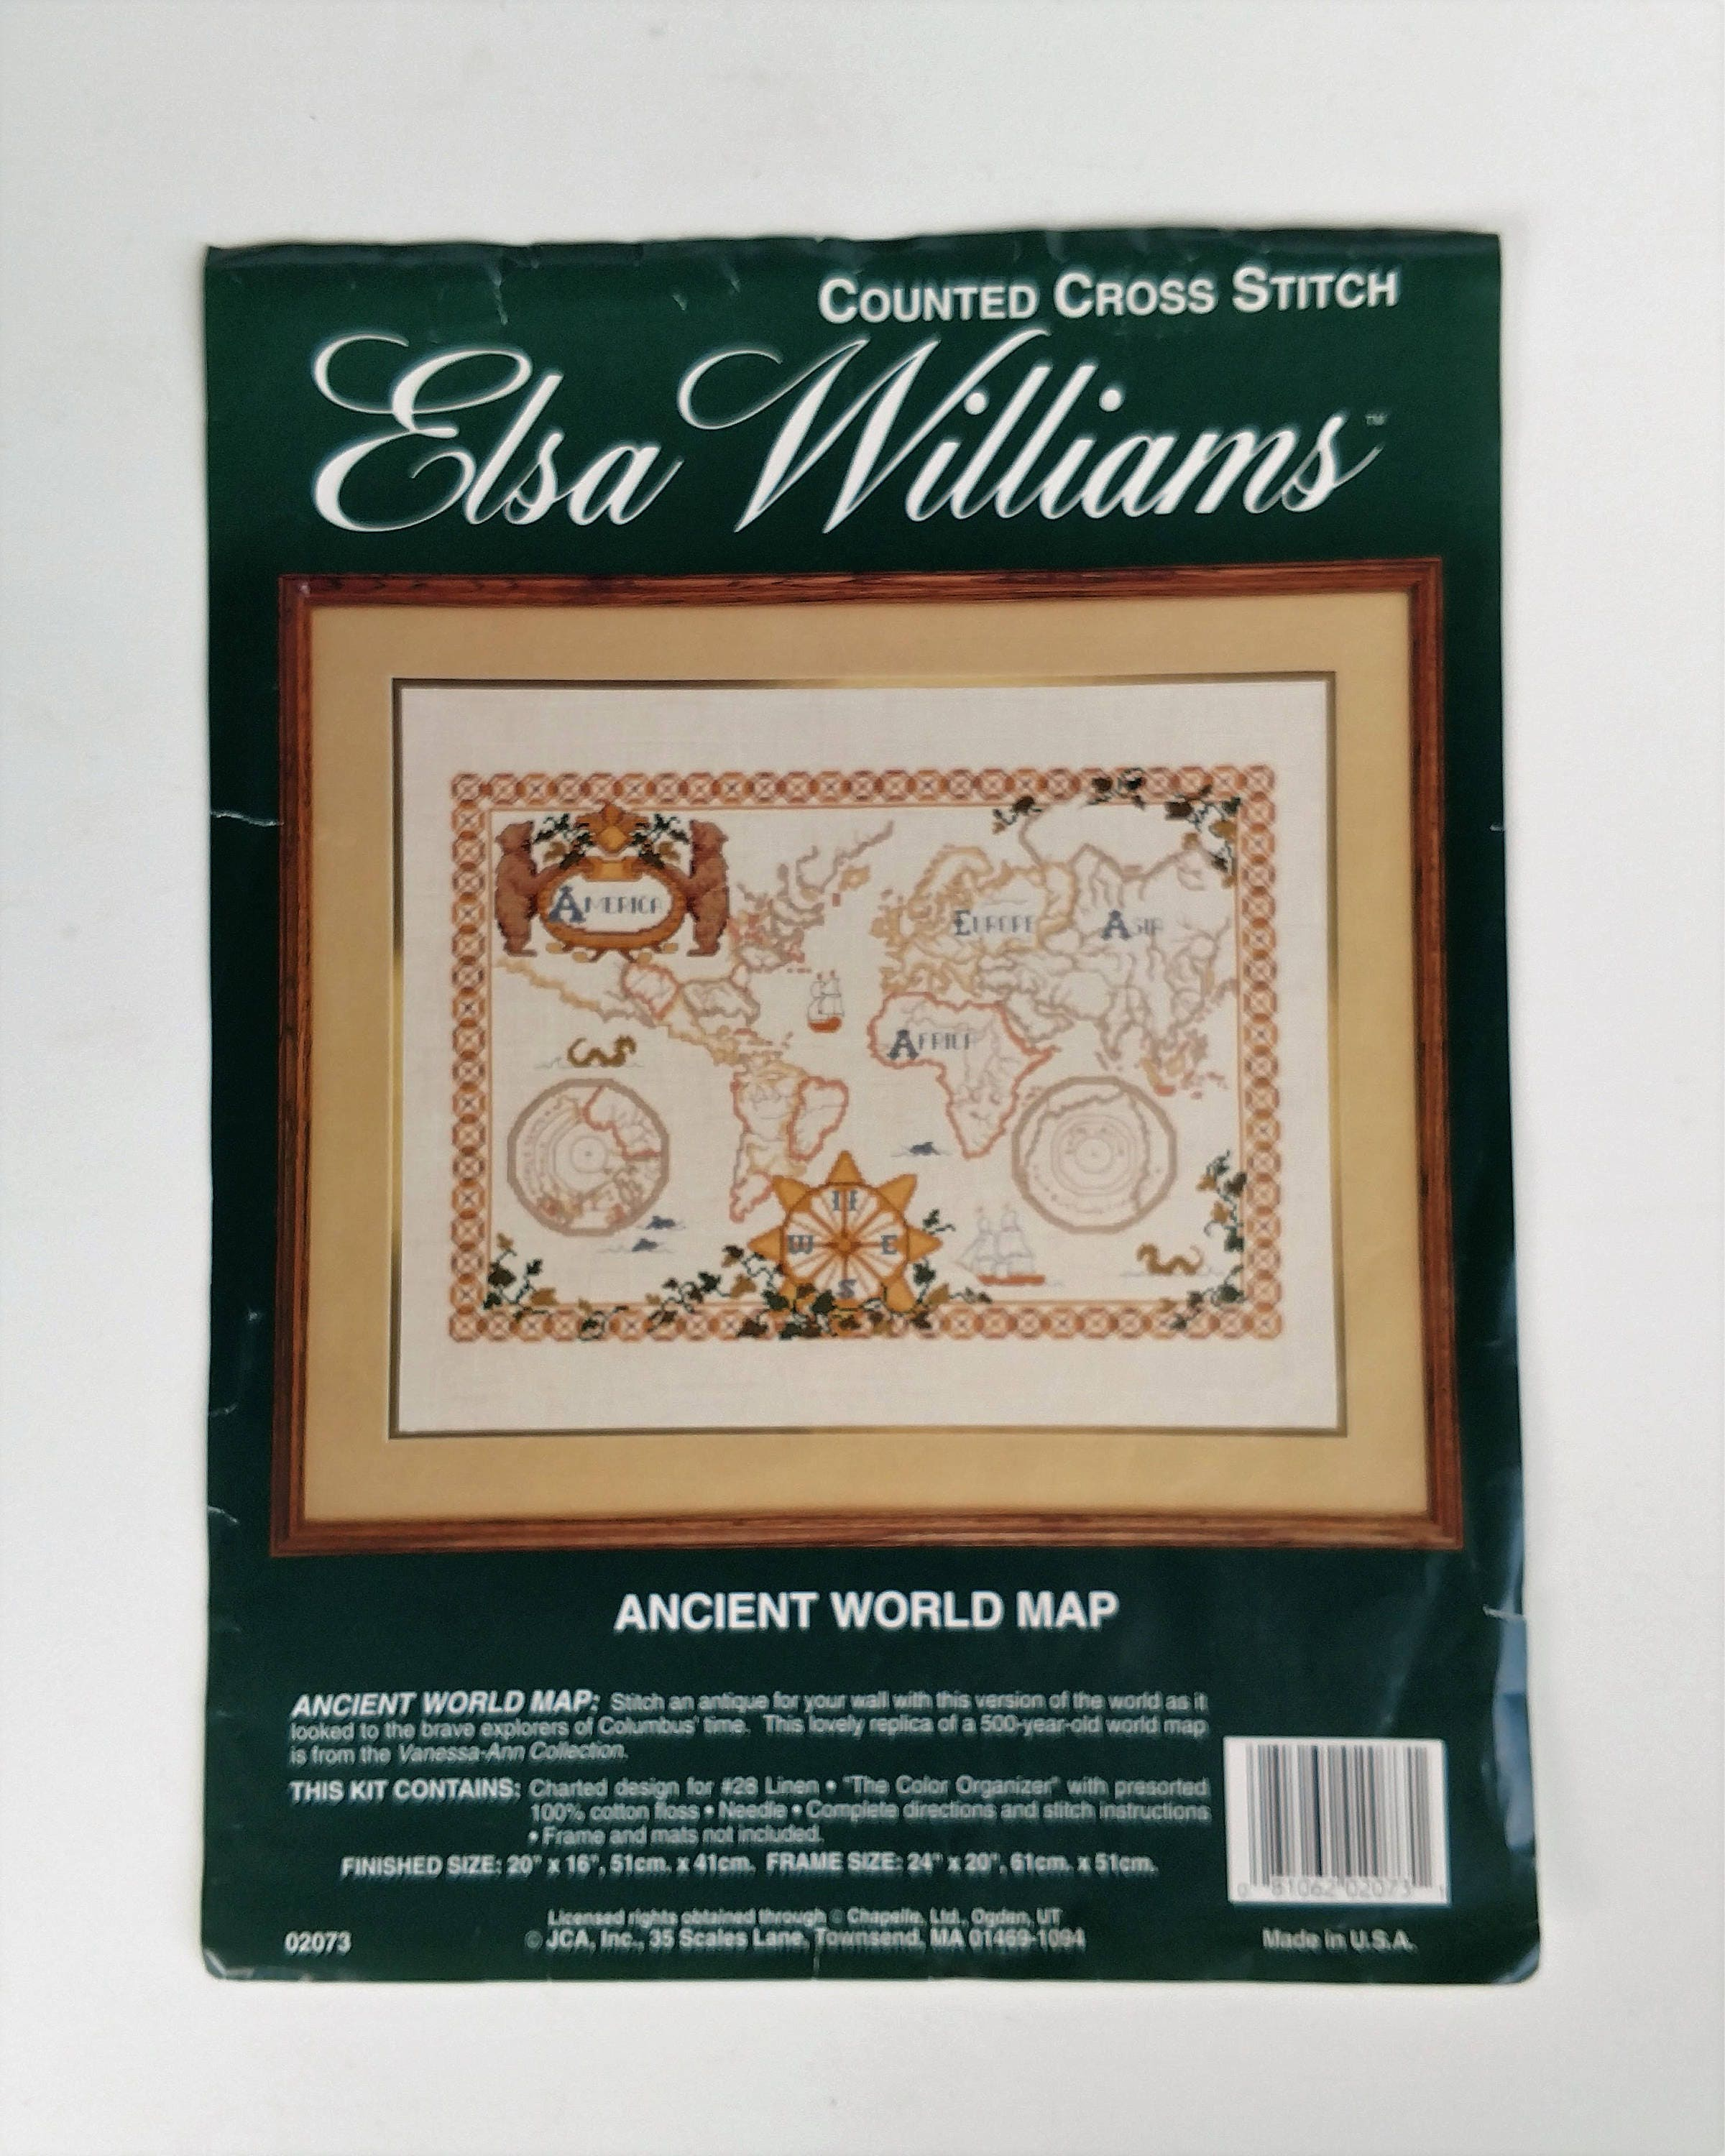 500 Year Old Map Of America.Elsa Williams Ancient World Map Counted Cross Stitch Kit By Vanessa Ann